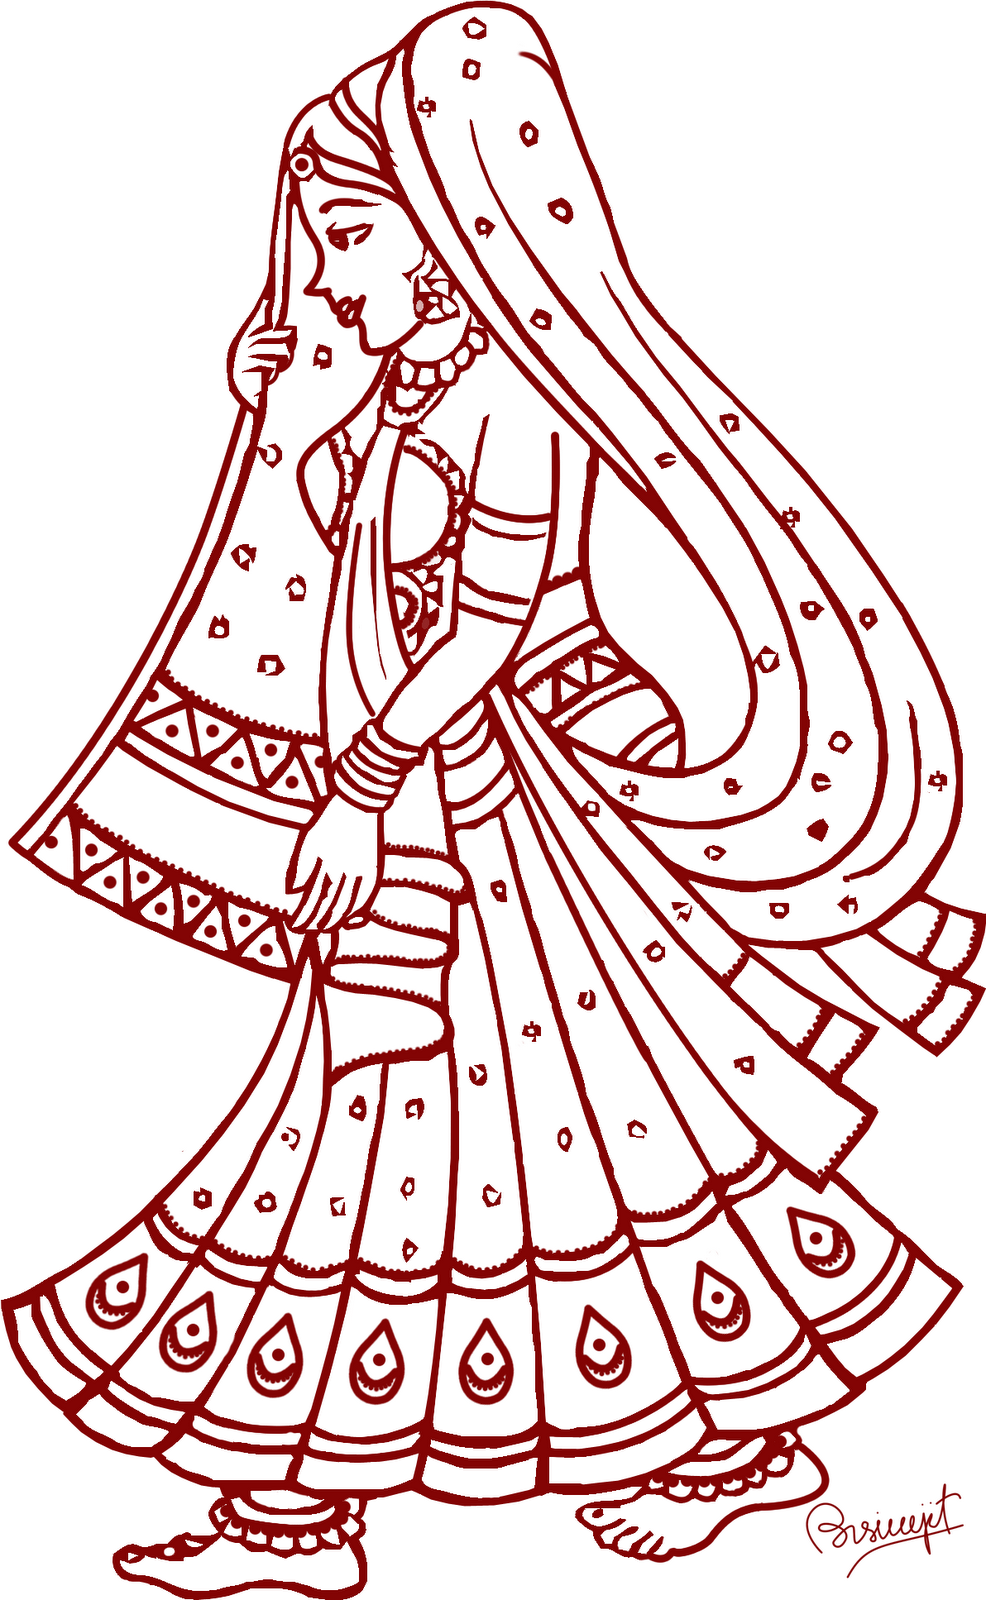 Indian traditional clipart svg library stock Indian traditional clipart - ClipartFest svg library stock